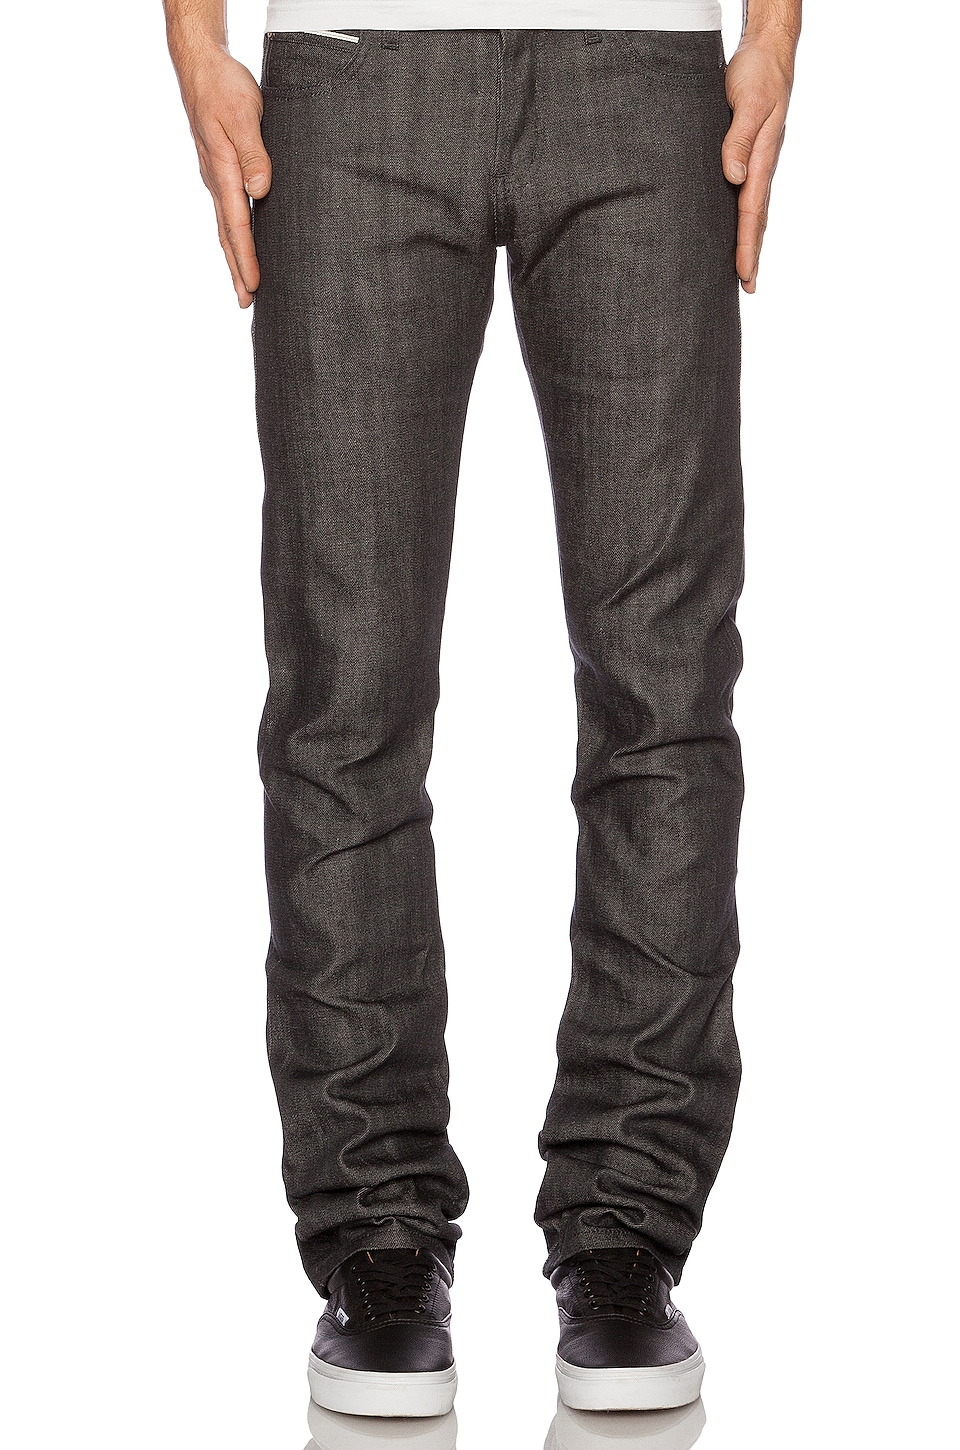 Skinny Guy Charcoal Selvedge by Naked & Famous Denim